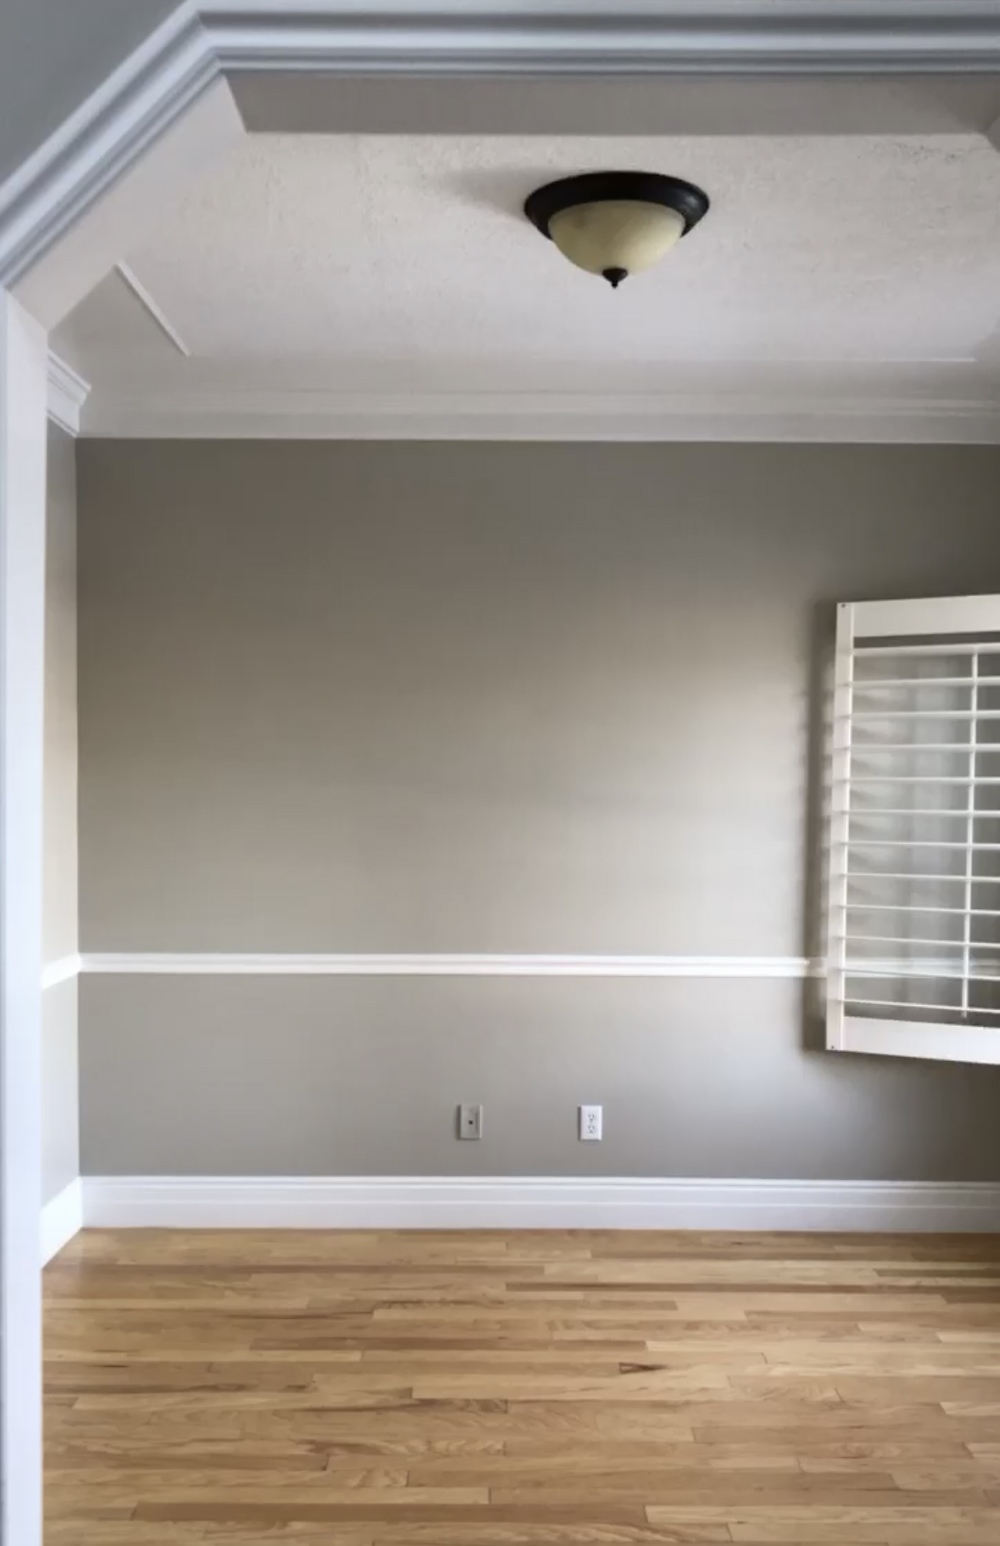 Our Next 5 Projects - roomfortuesday.com